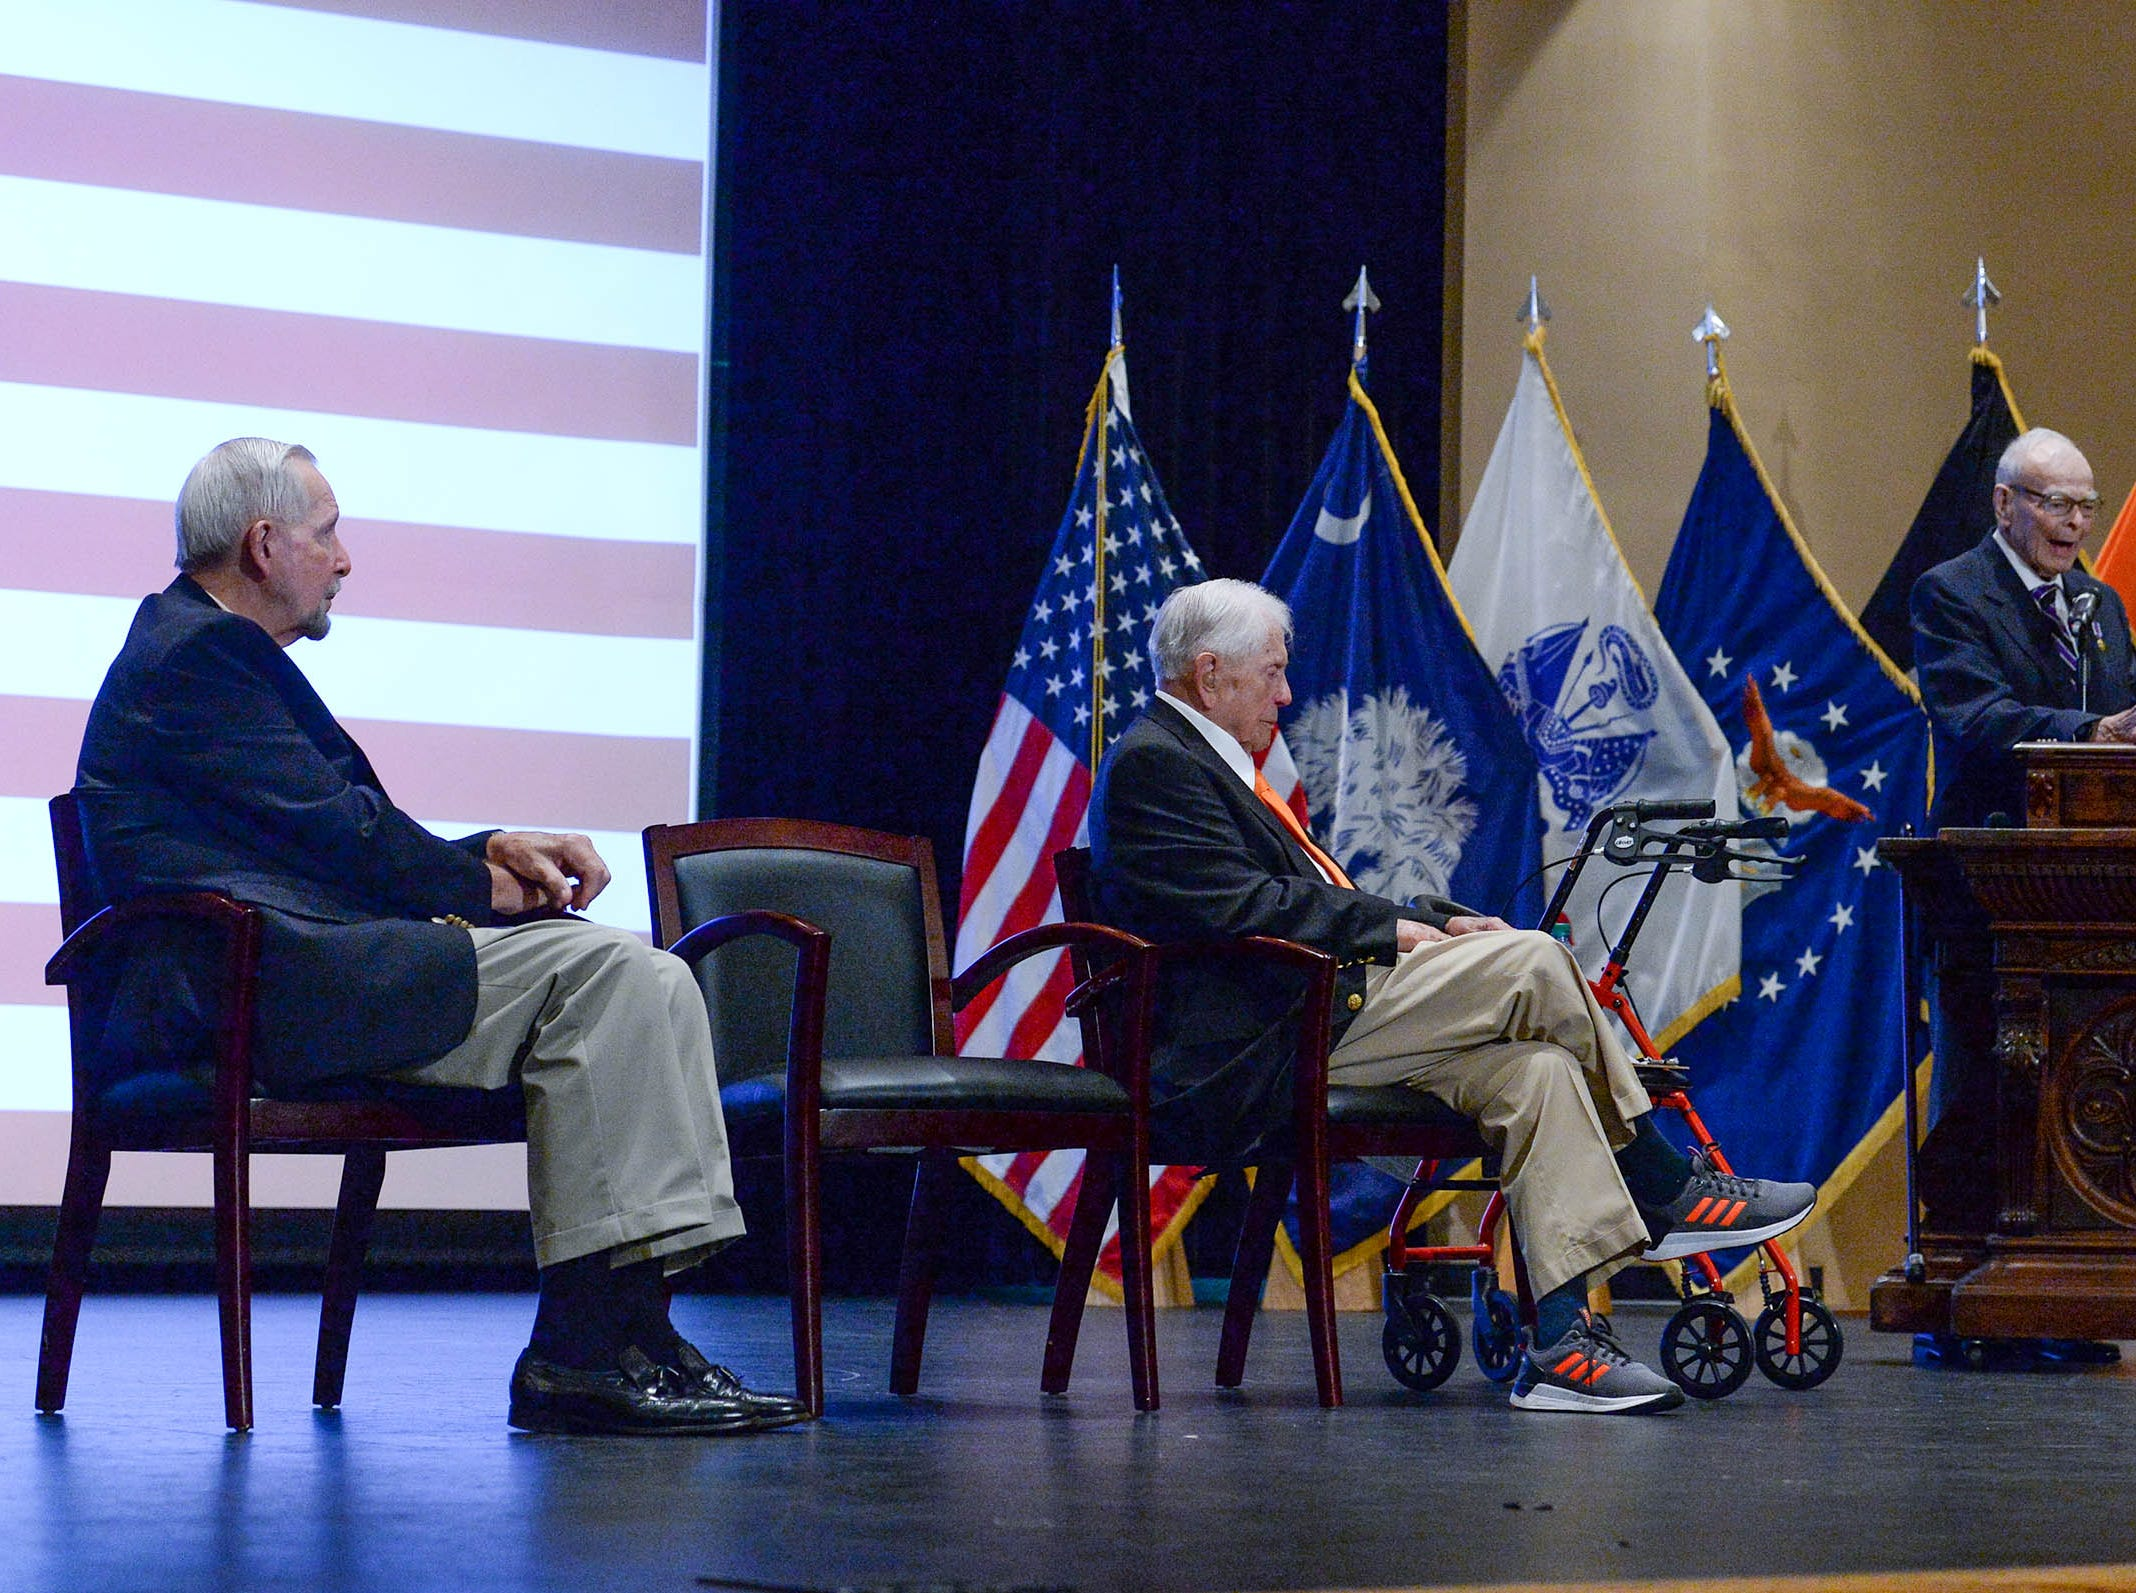 Living Prisoners of War, Col. Ben Skardon, 1st Lt. Bill Funchess, and Col. Bill Austin spoke in Tillman Hall at Clemson University  on Thursday. Funchess was held captive for 1,038 days by the North Korean Army, Austin in North Vietnam for 1,986 days, and Skardon for 1,255 days.